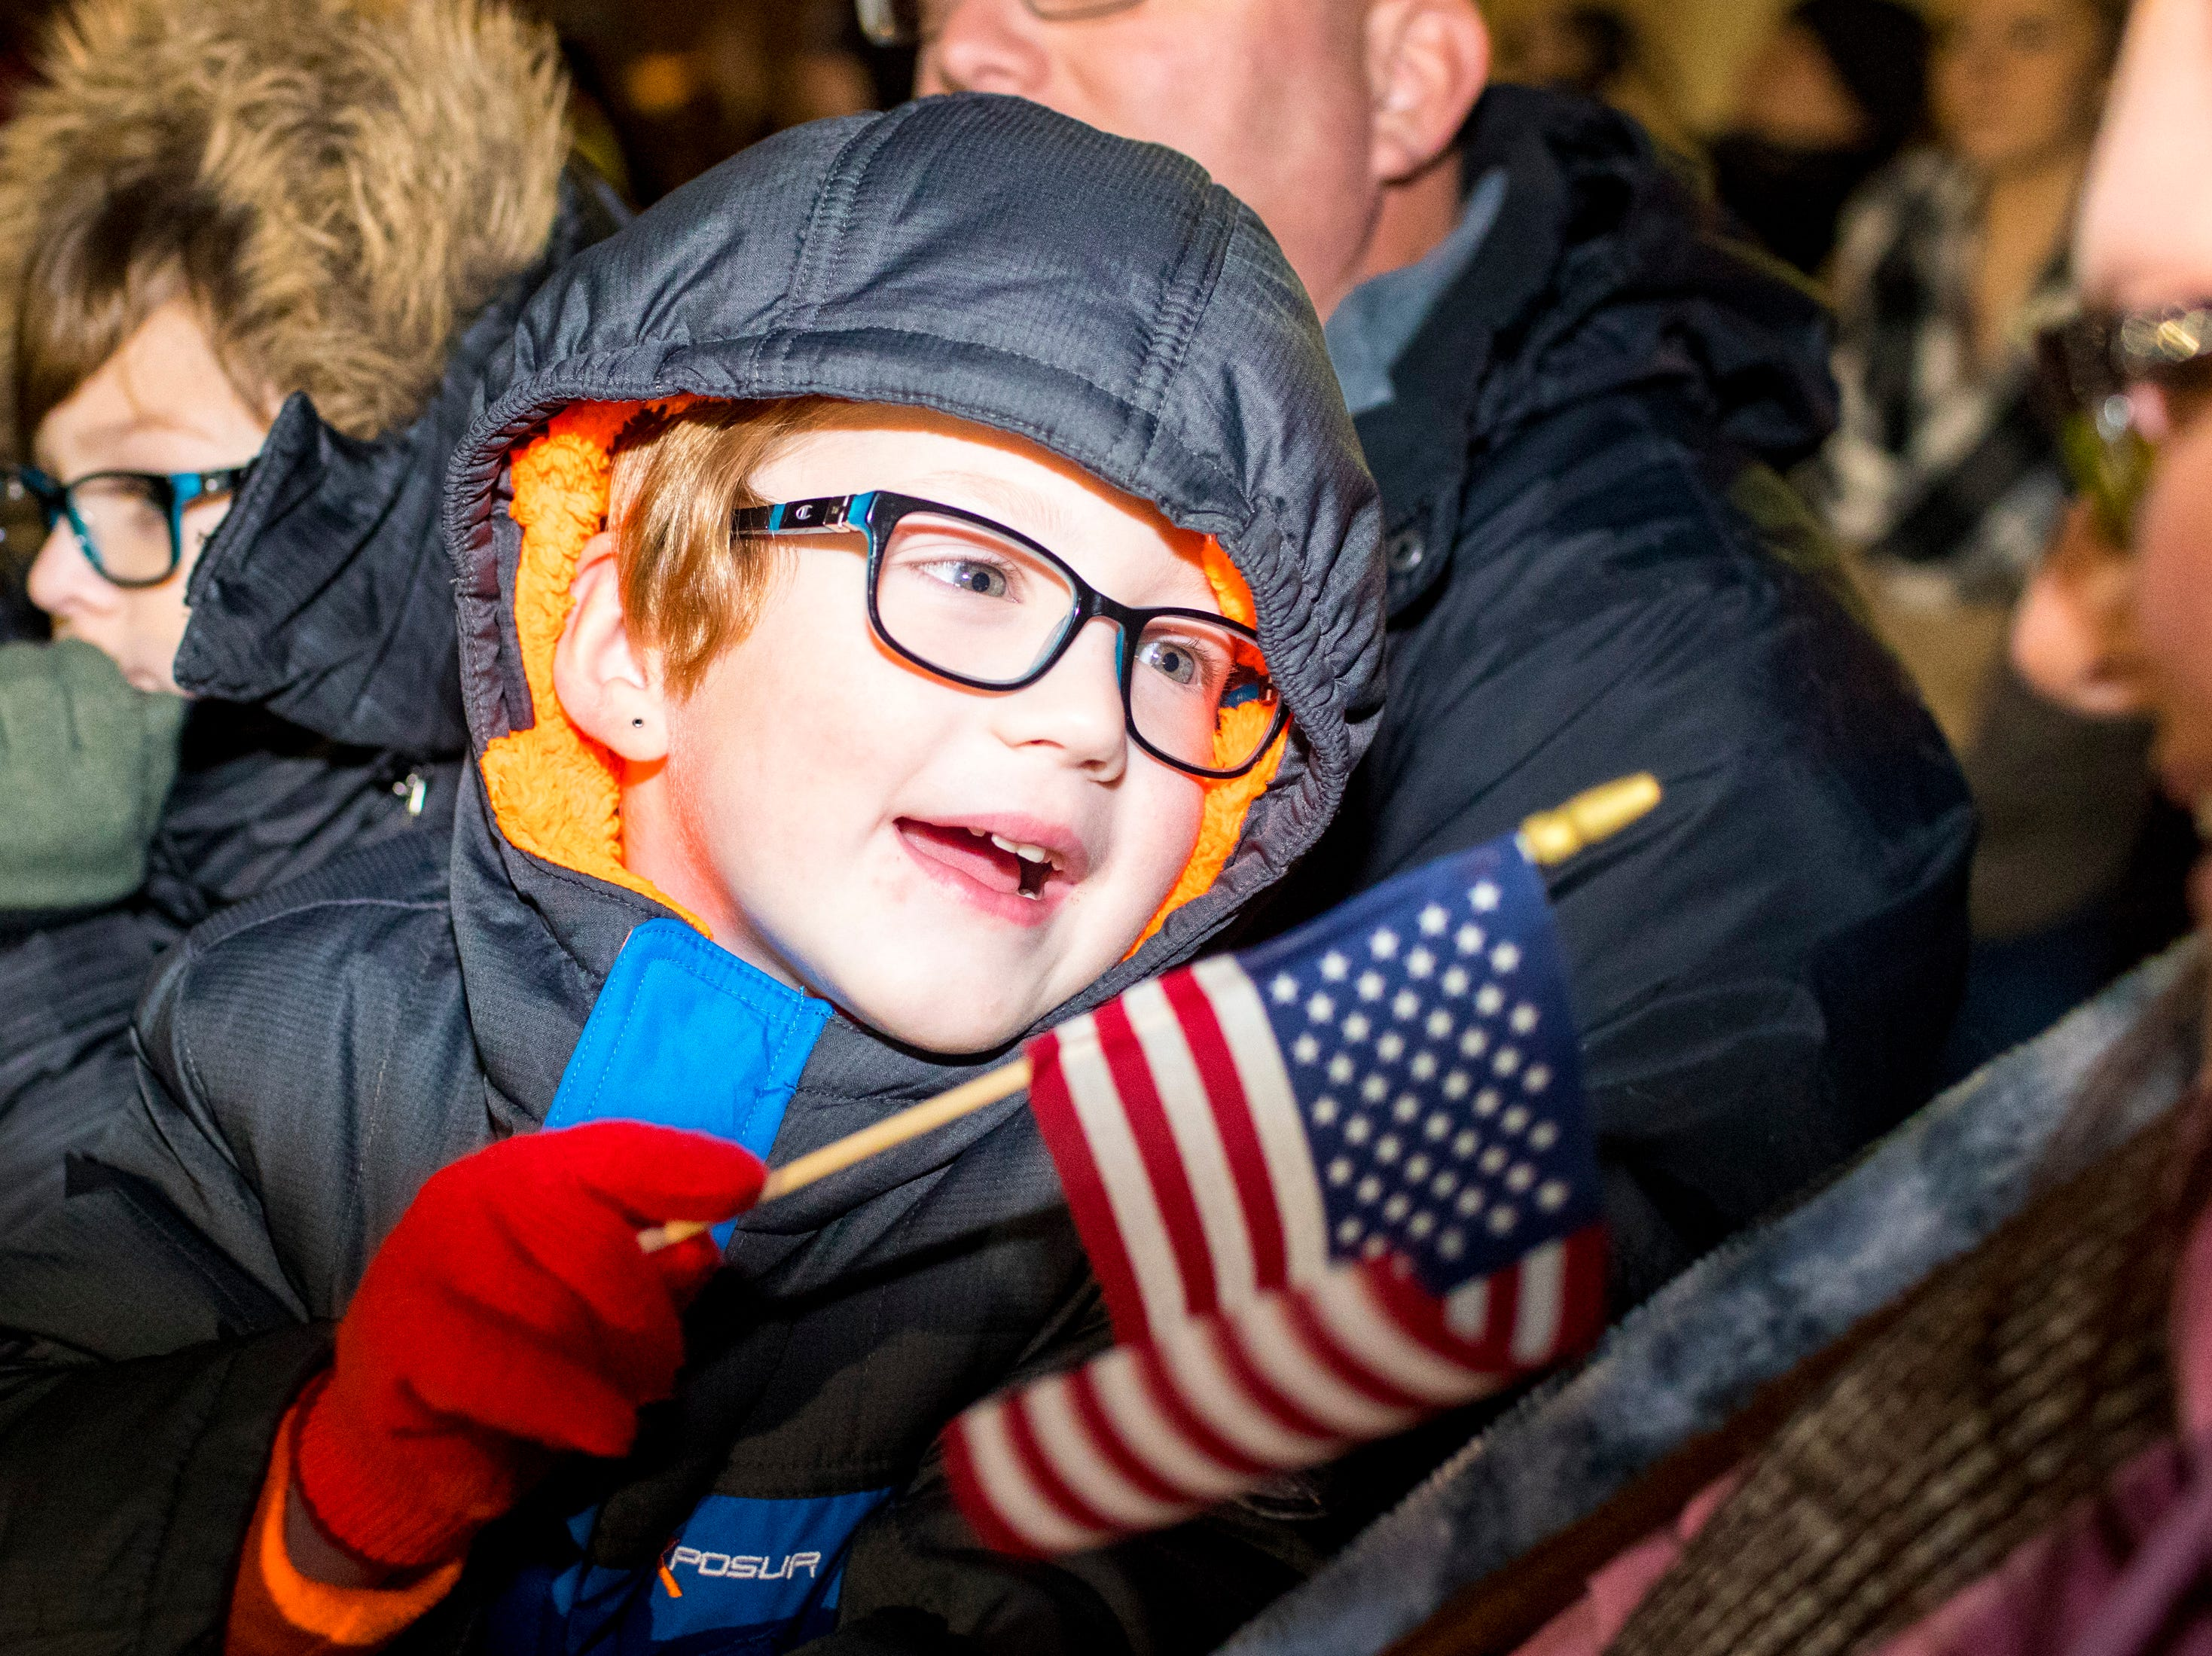 Hudsyn VanKirk, 6, talks to his mom Felisha VanKirk while waiting for Specialist Nick Green to arrive during the welcome home ceremony for the 2nd Battalion, 44th Air Defense Artillery Regiment and 101st Airborne Division at Fort Campbell in the early hours of Monday, Nov. 19, 2018. The soldiers were returning from a 9-month deployment in Afghanistan.